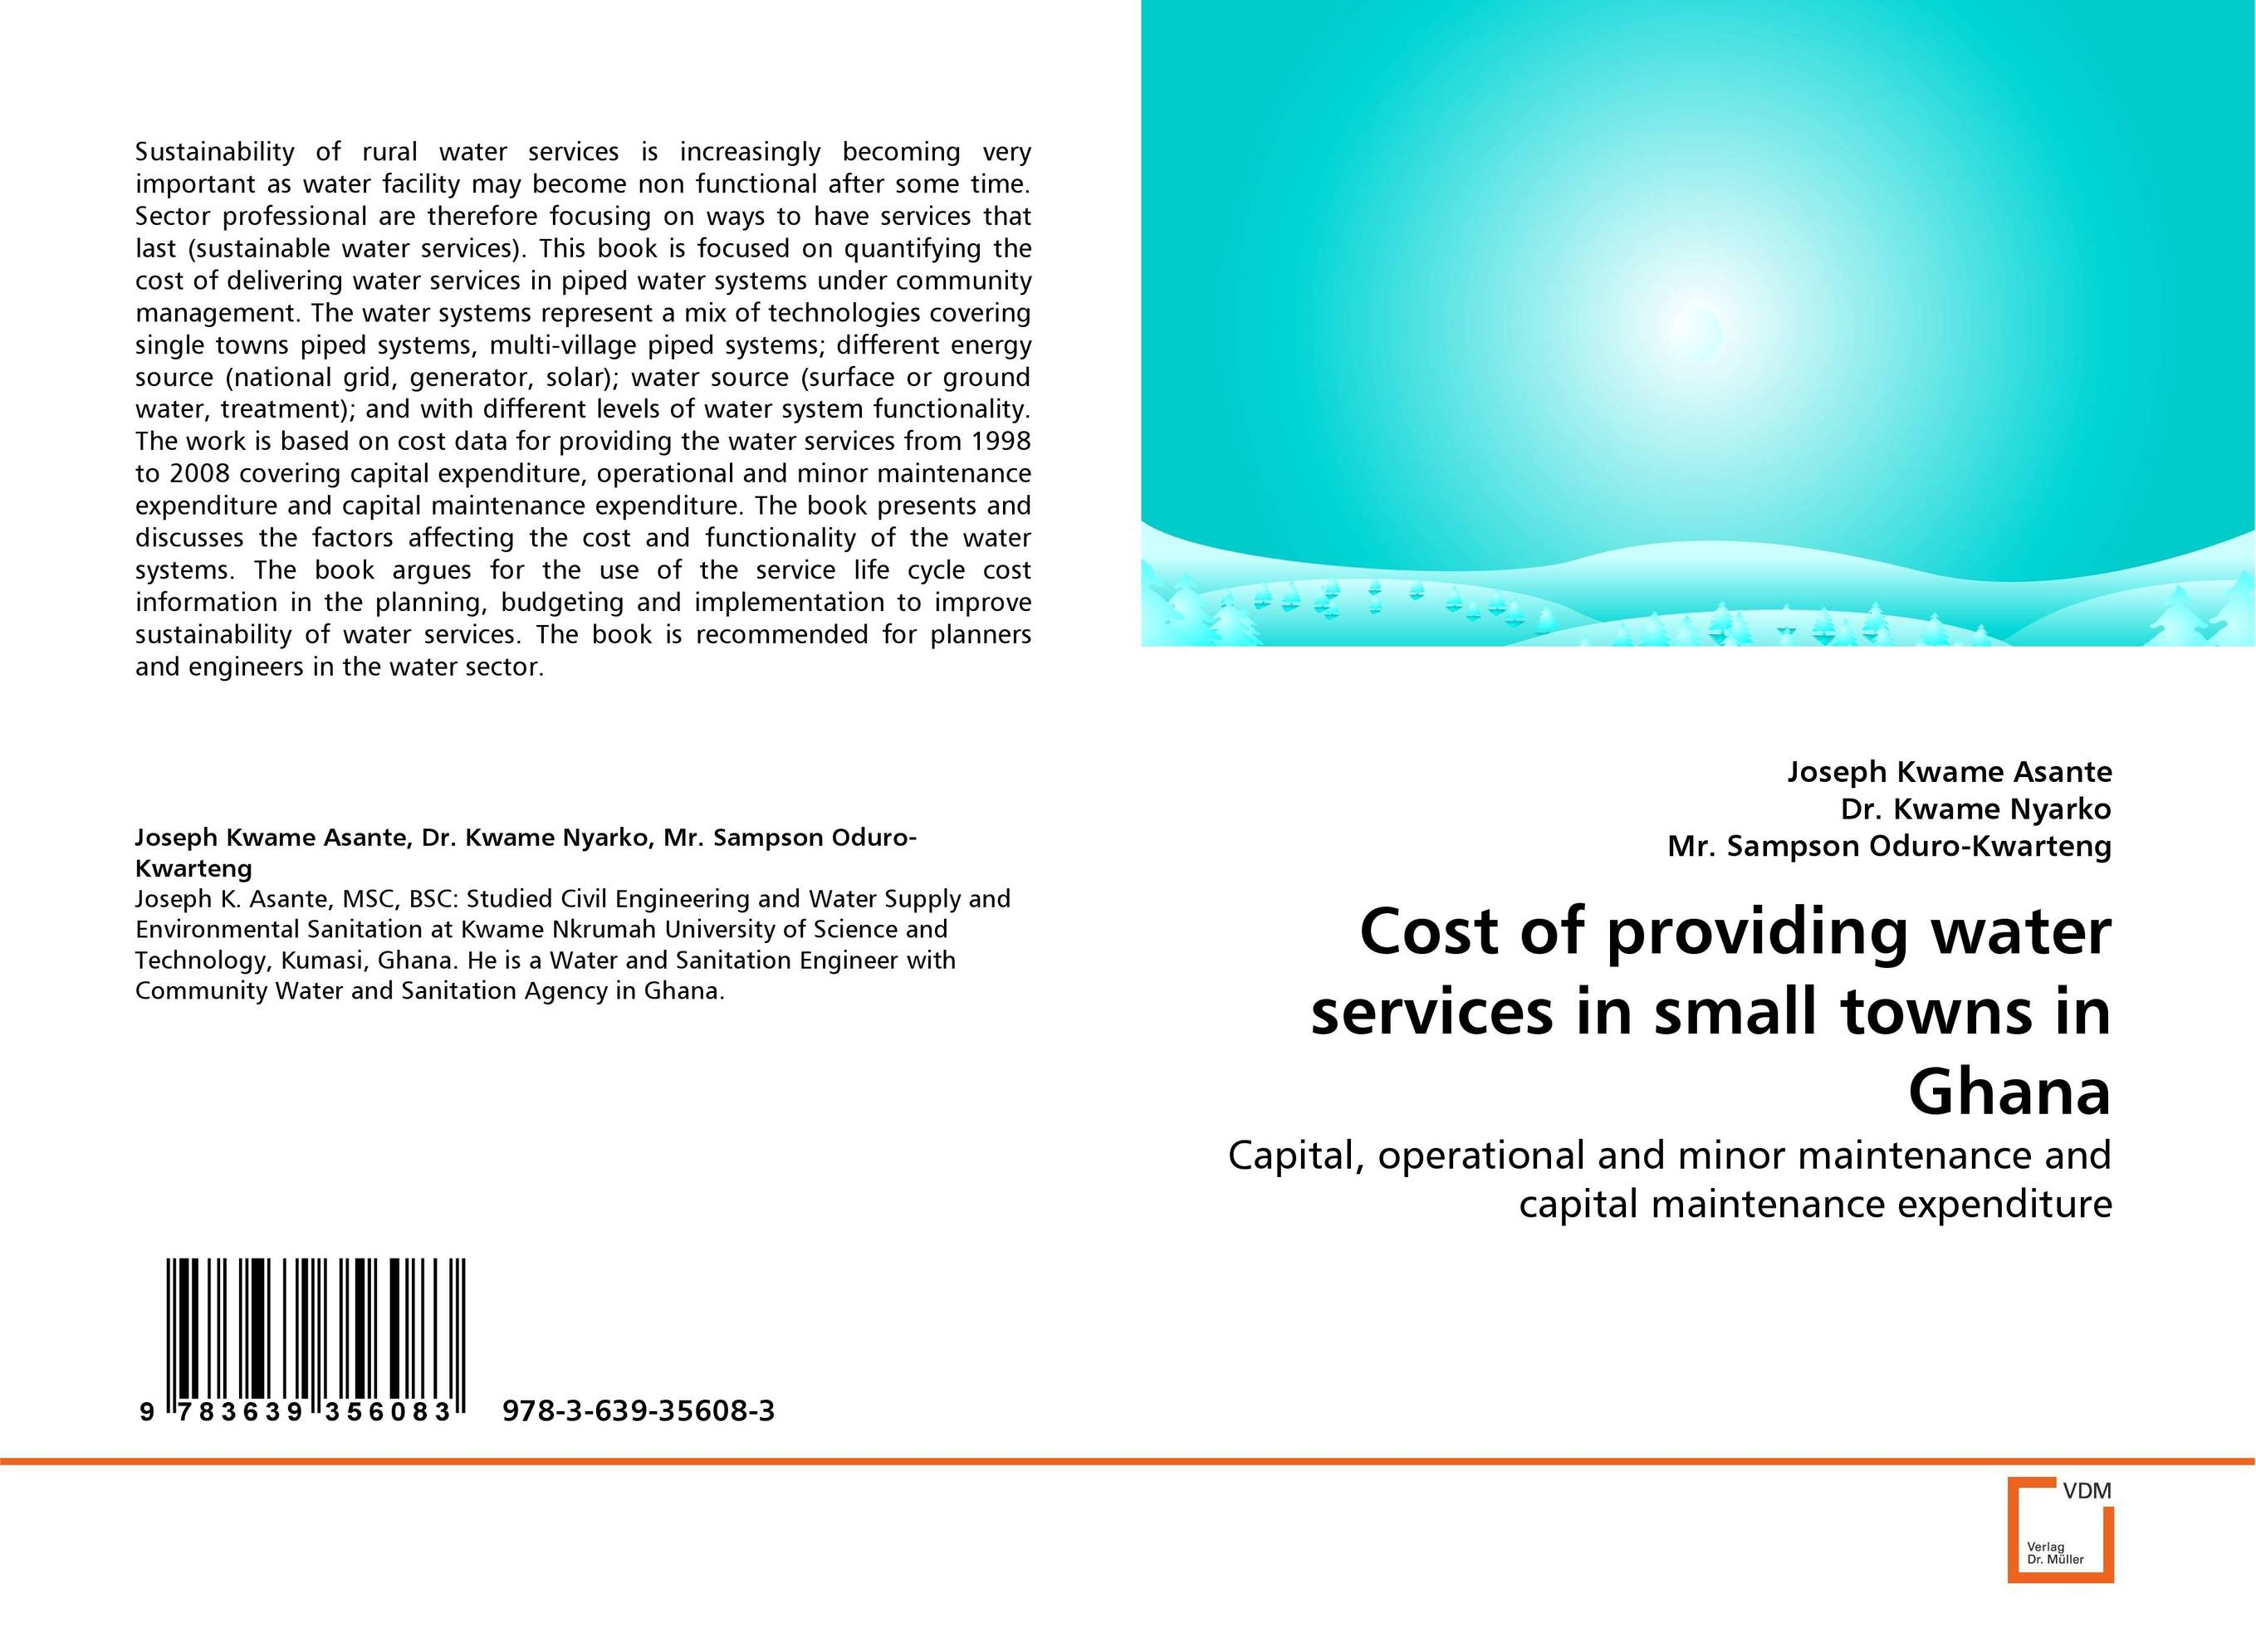 Cost of providing water services in small towns in Ghana extra fee cost just for the balance of your order shipping cost